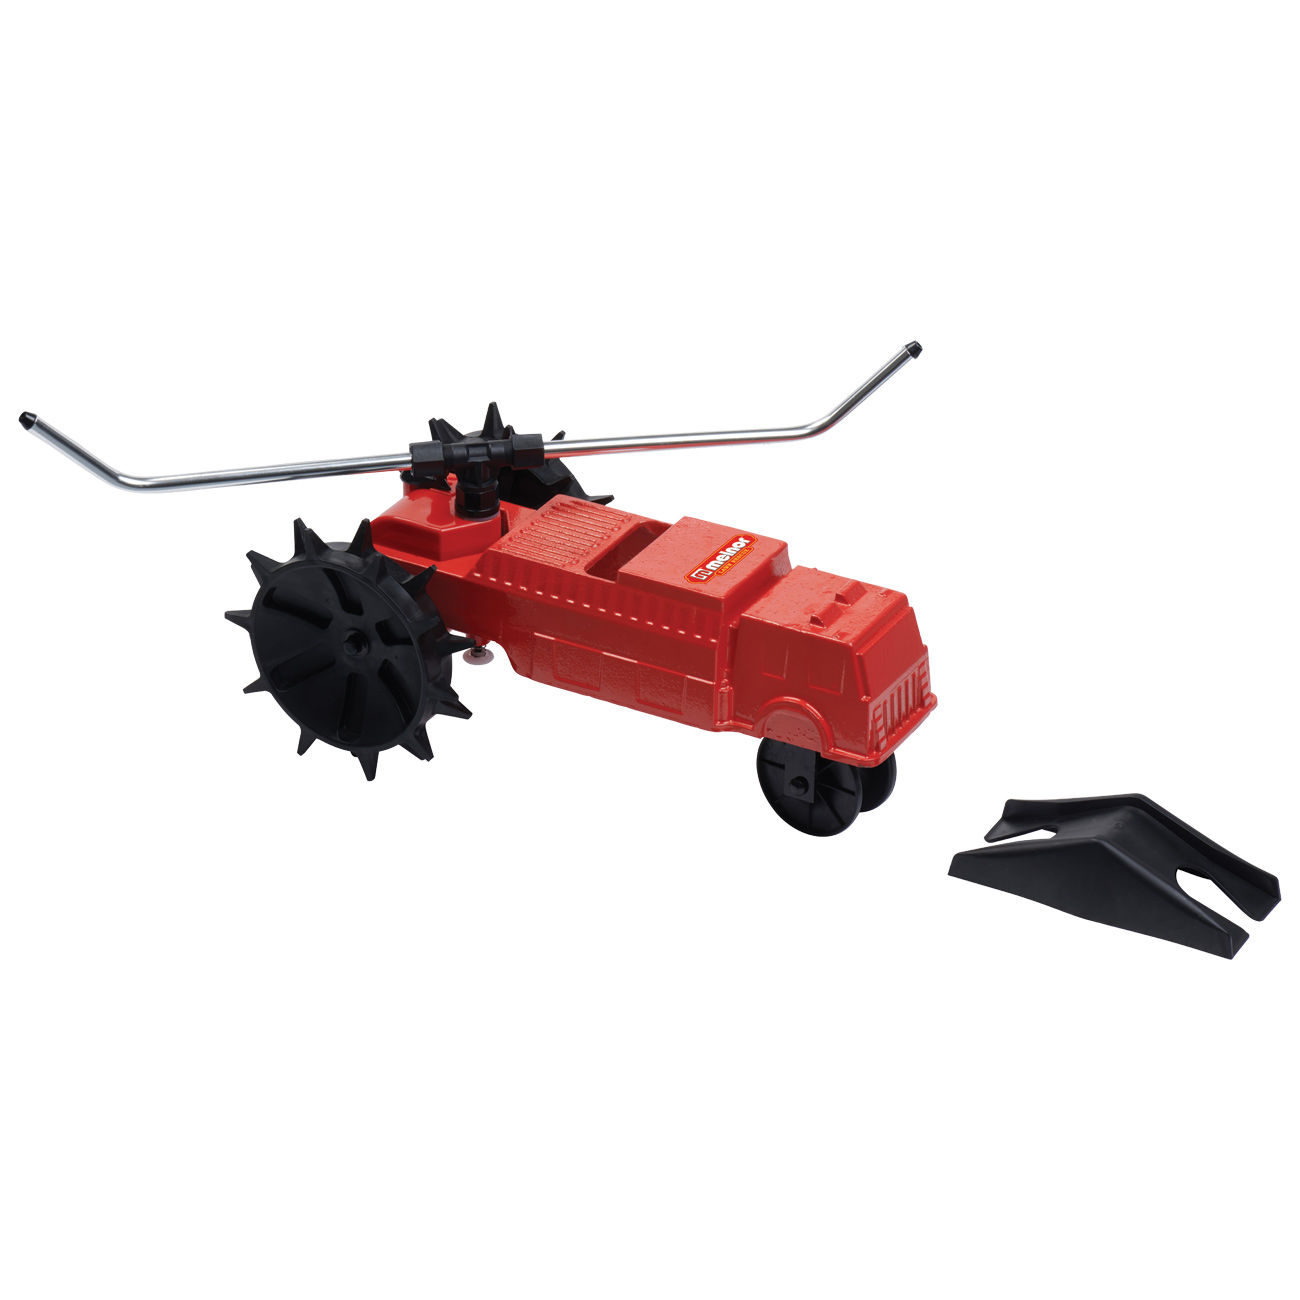 Melnor Lawn Rescue Traveling Sprinkler by Melnor, Inc.